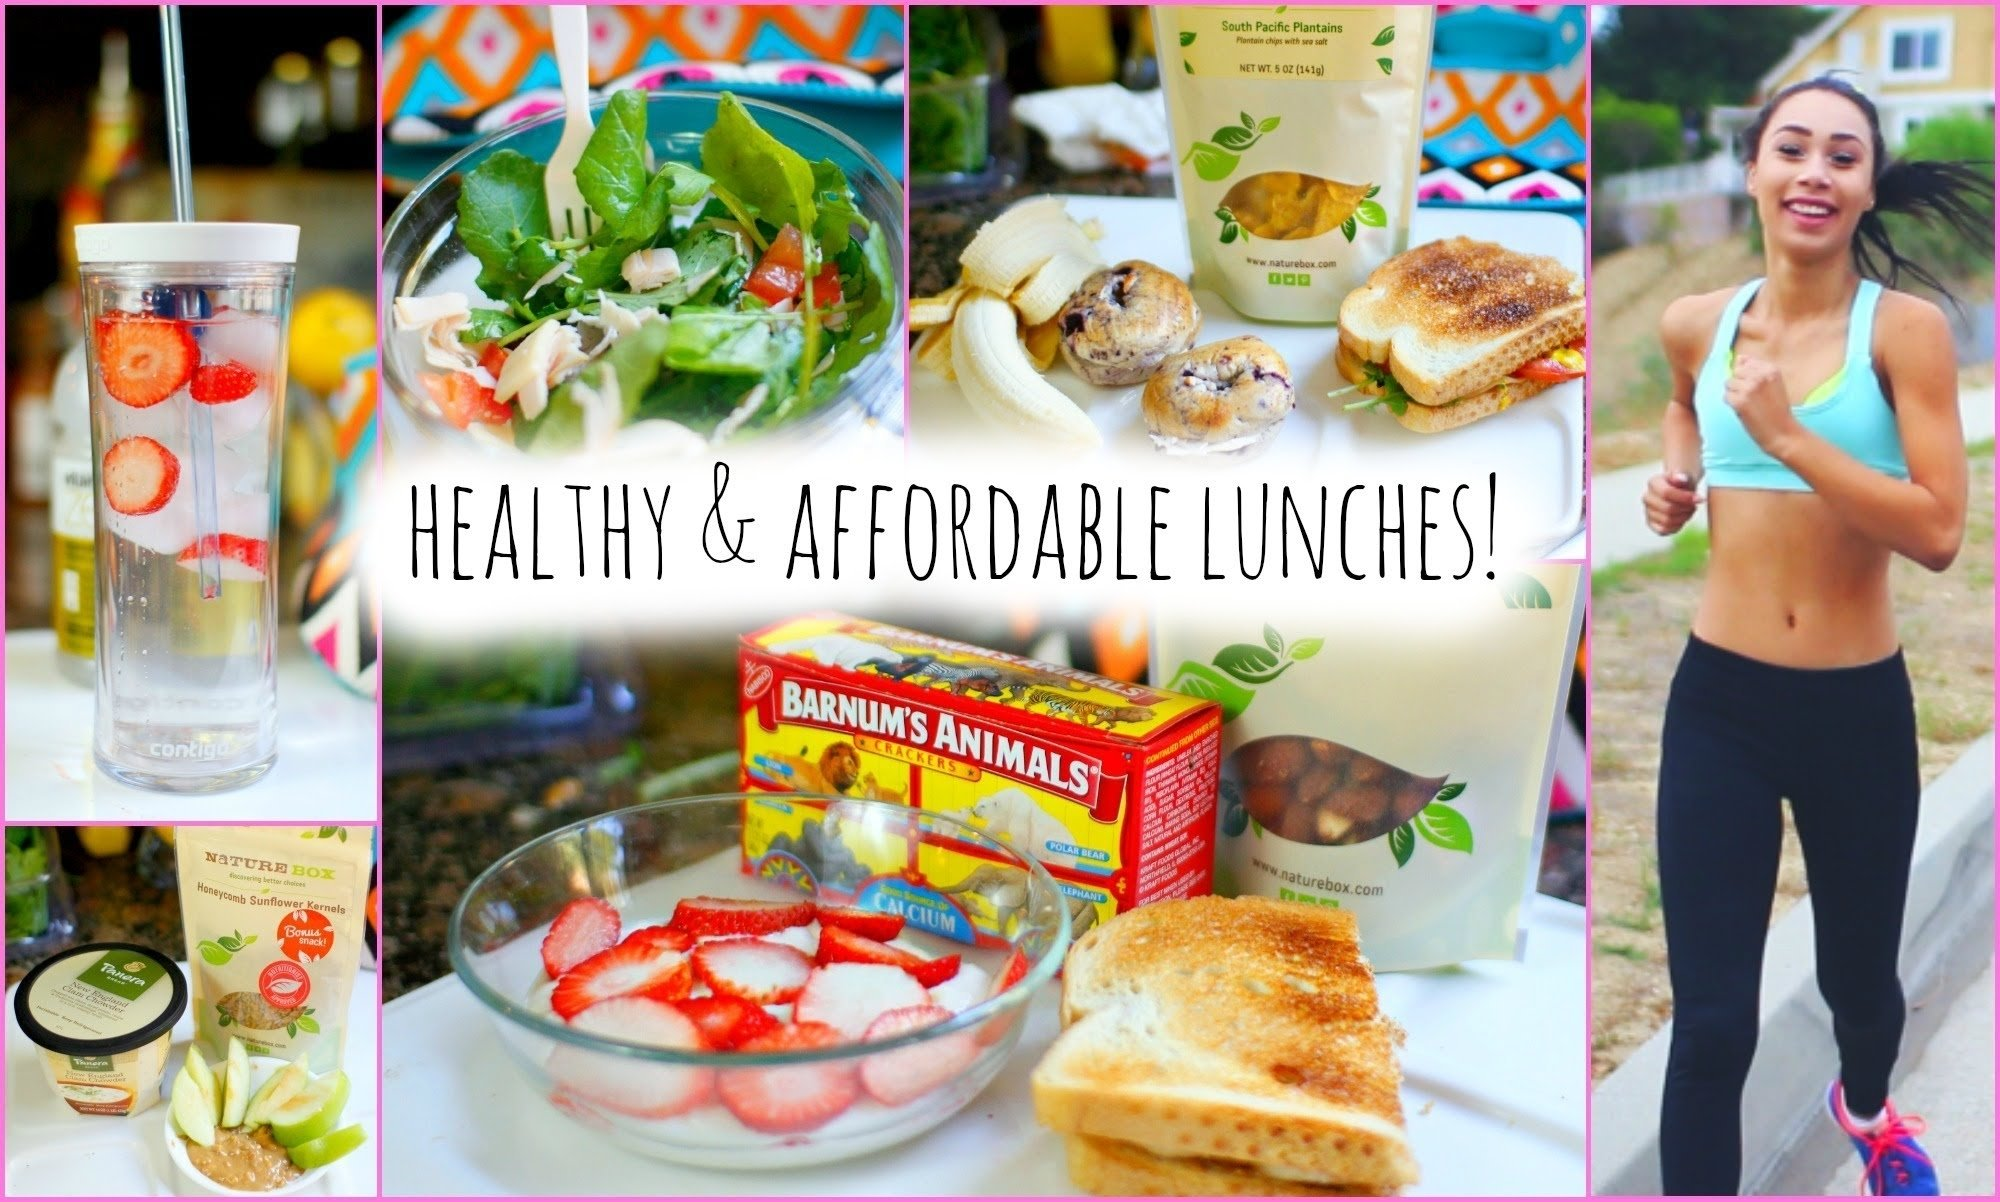 10 Stylish Lunch Ideas For High School 5 healthy and affordable lunch ideas for school youtube 6 2020